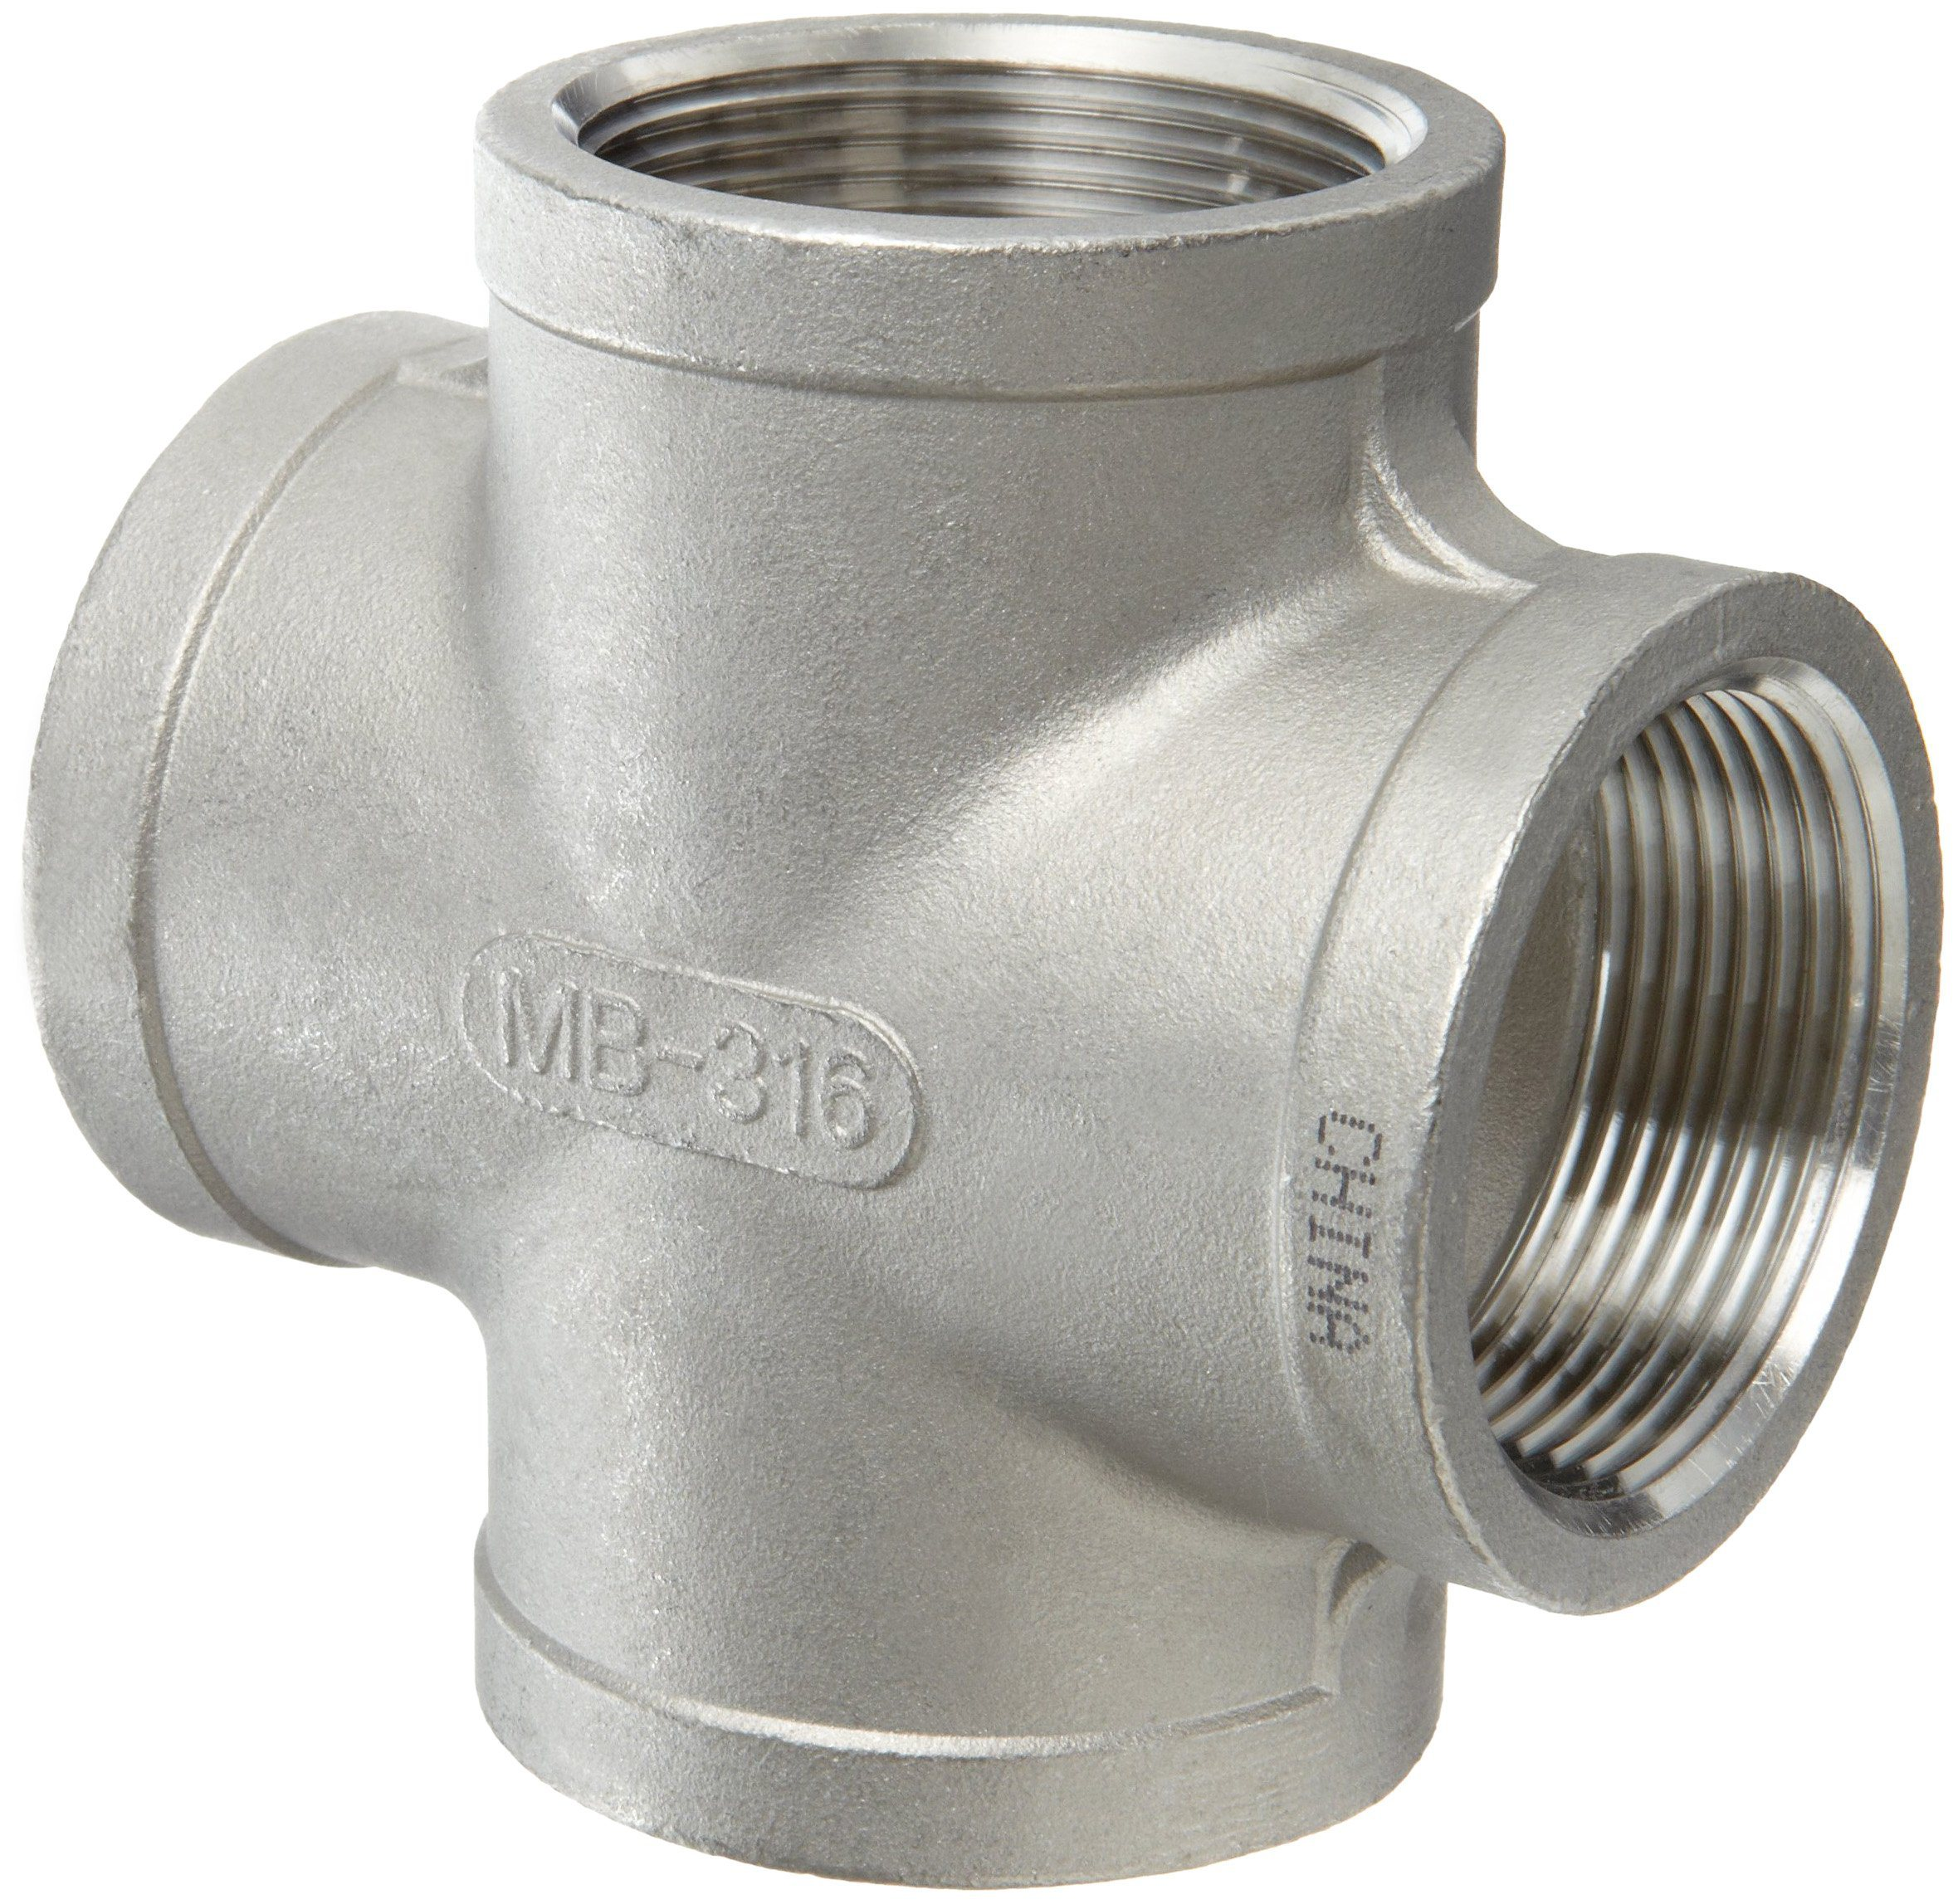 Forged fittings purexia engginering co